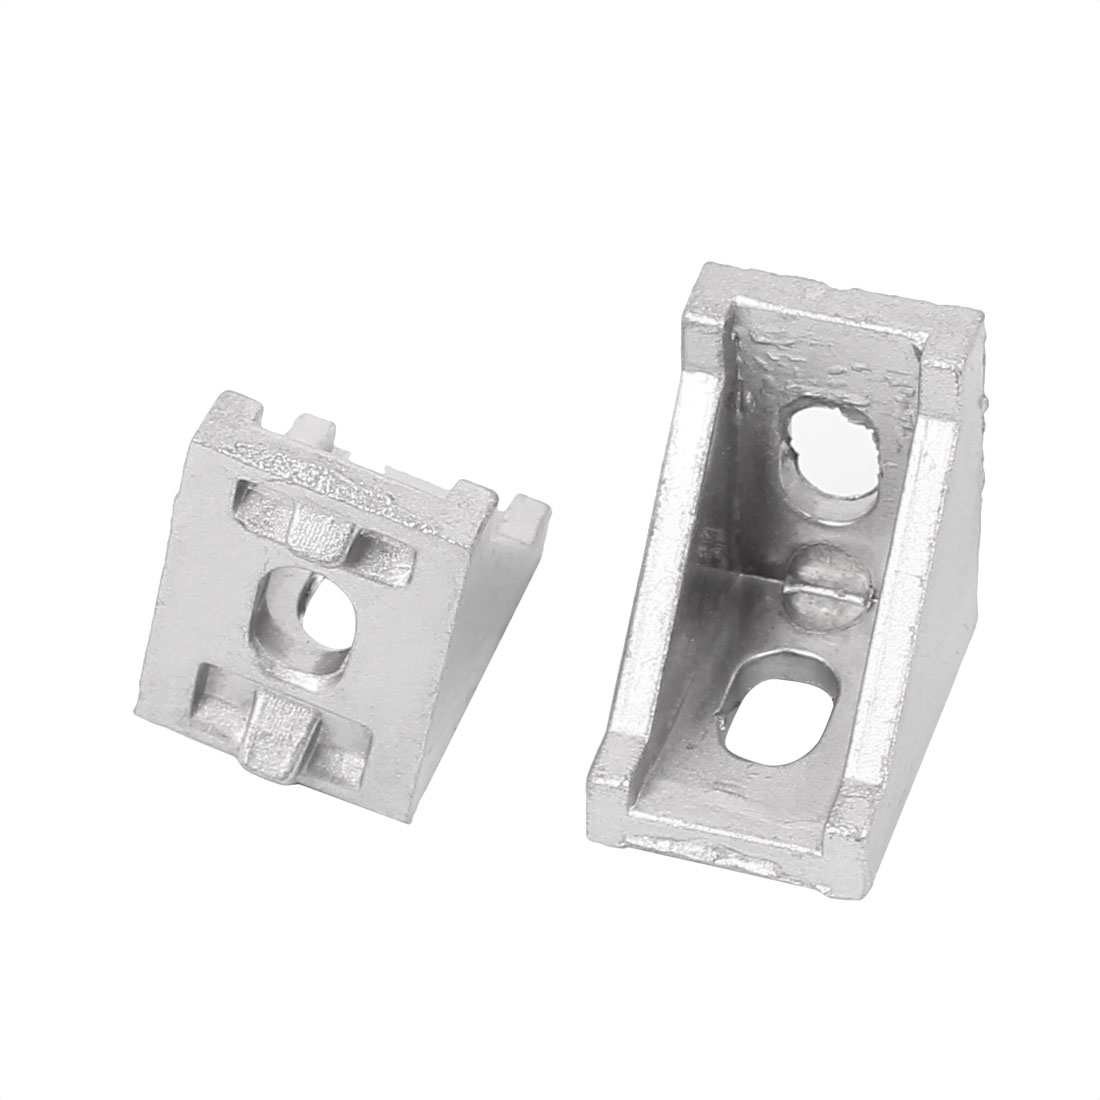 28x28x20mm Aluminum Alloy Corner Vertical Angle Brackets Supports 2pcs